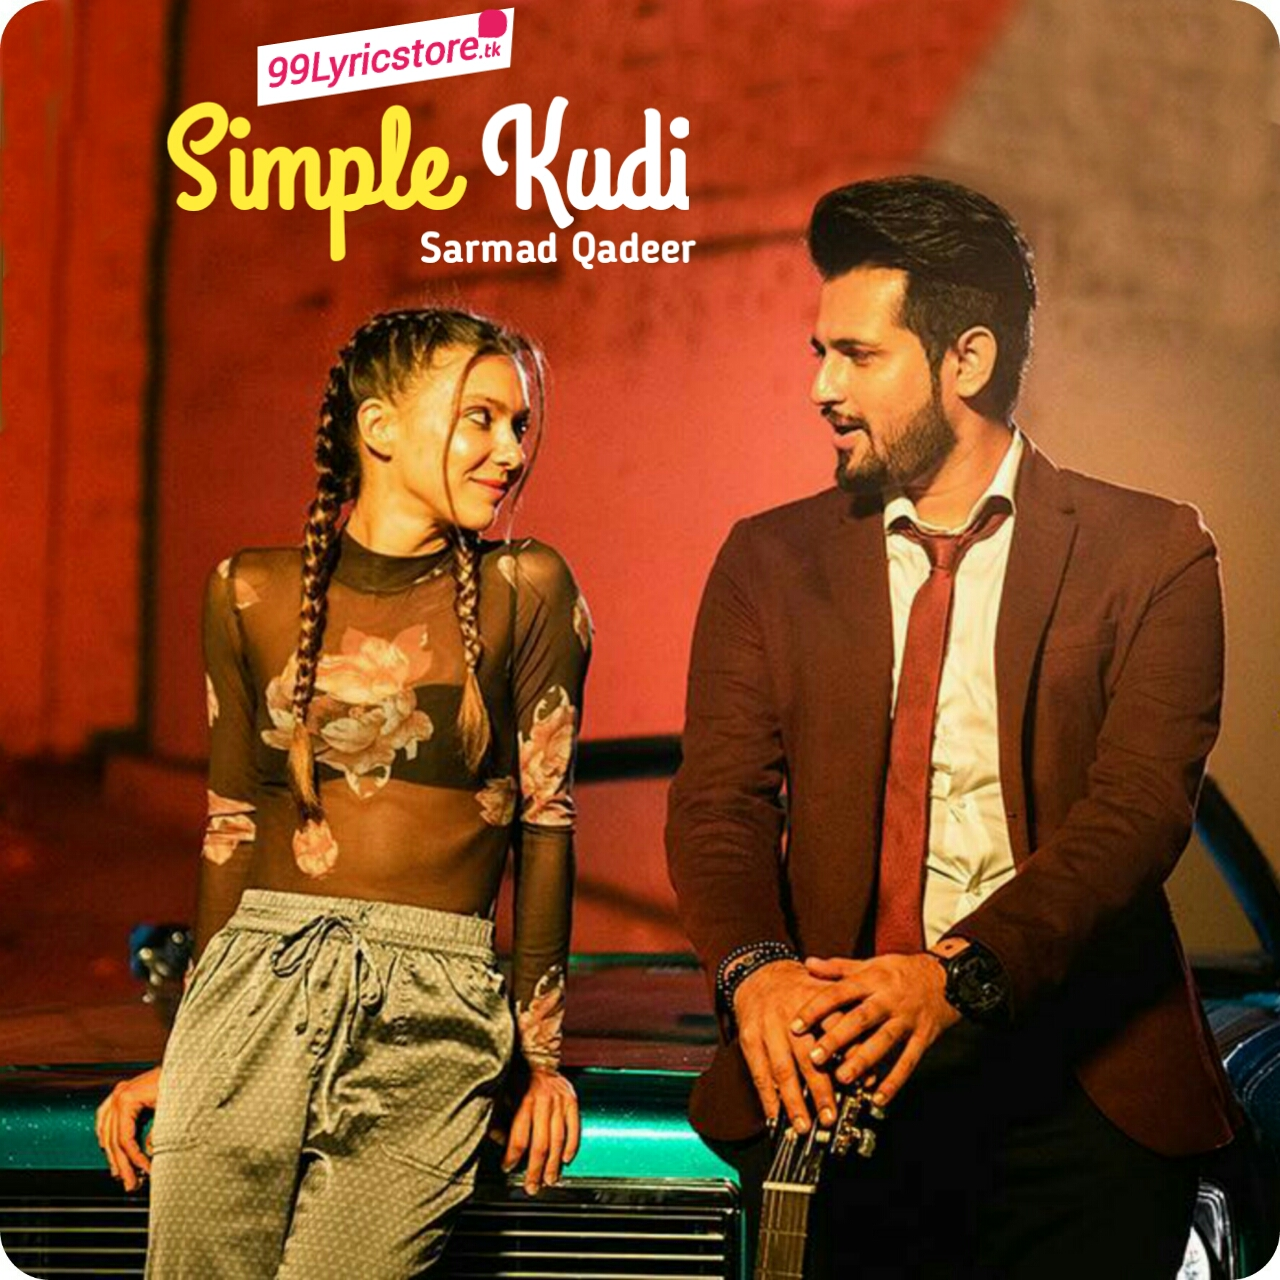 Simple Kudi Song Lyrics, Simple Kudi Punjabi Song Lyrics, Simple Kudi Song images, Sarmad Qadeer Song Lyrics, New Punjabi Song Lyrics 2018, Latest Punjabi Song Lyrics 2018, Sarmad Qadeer Punjabi Song Lyrics